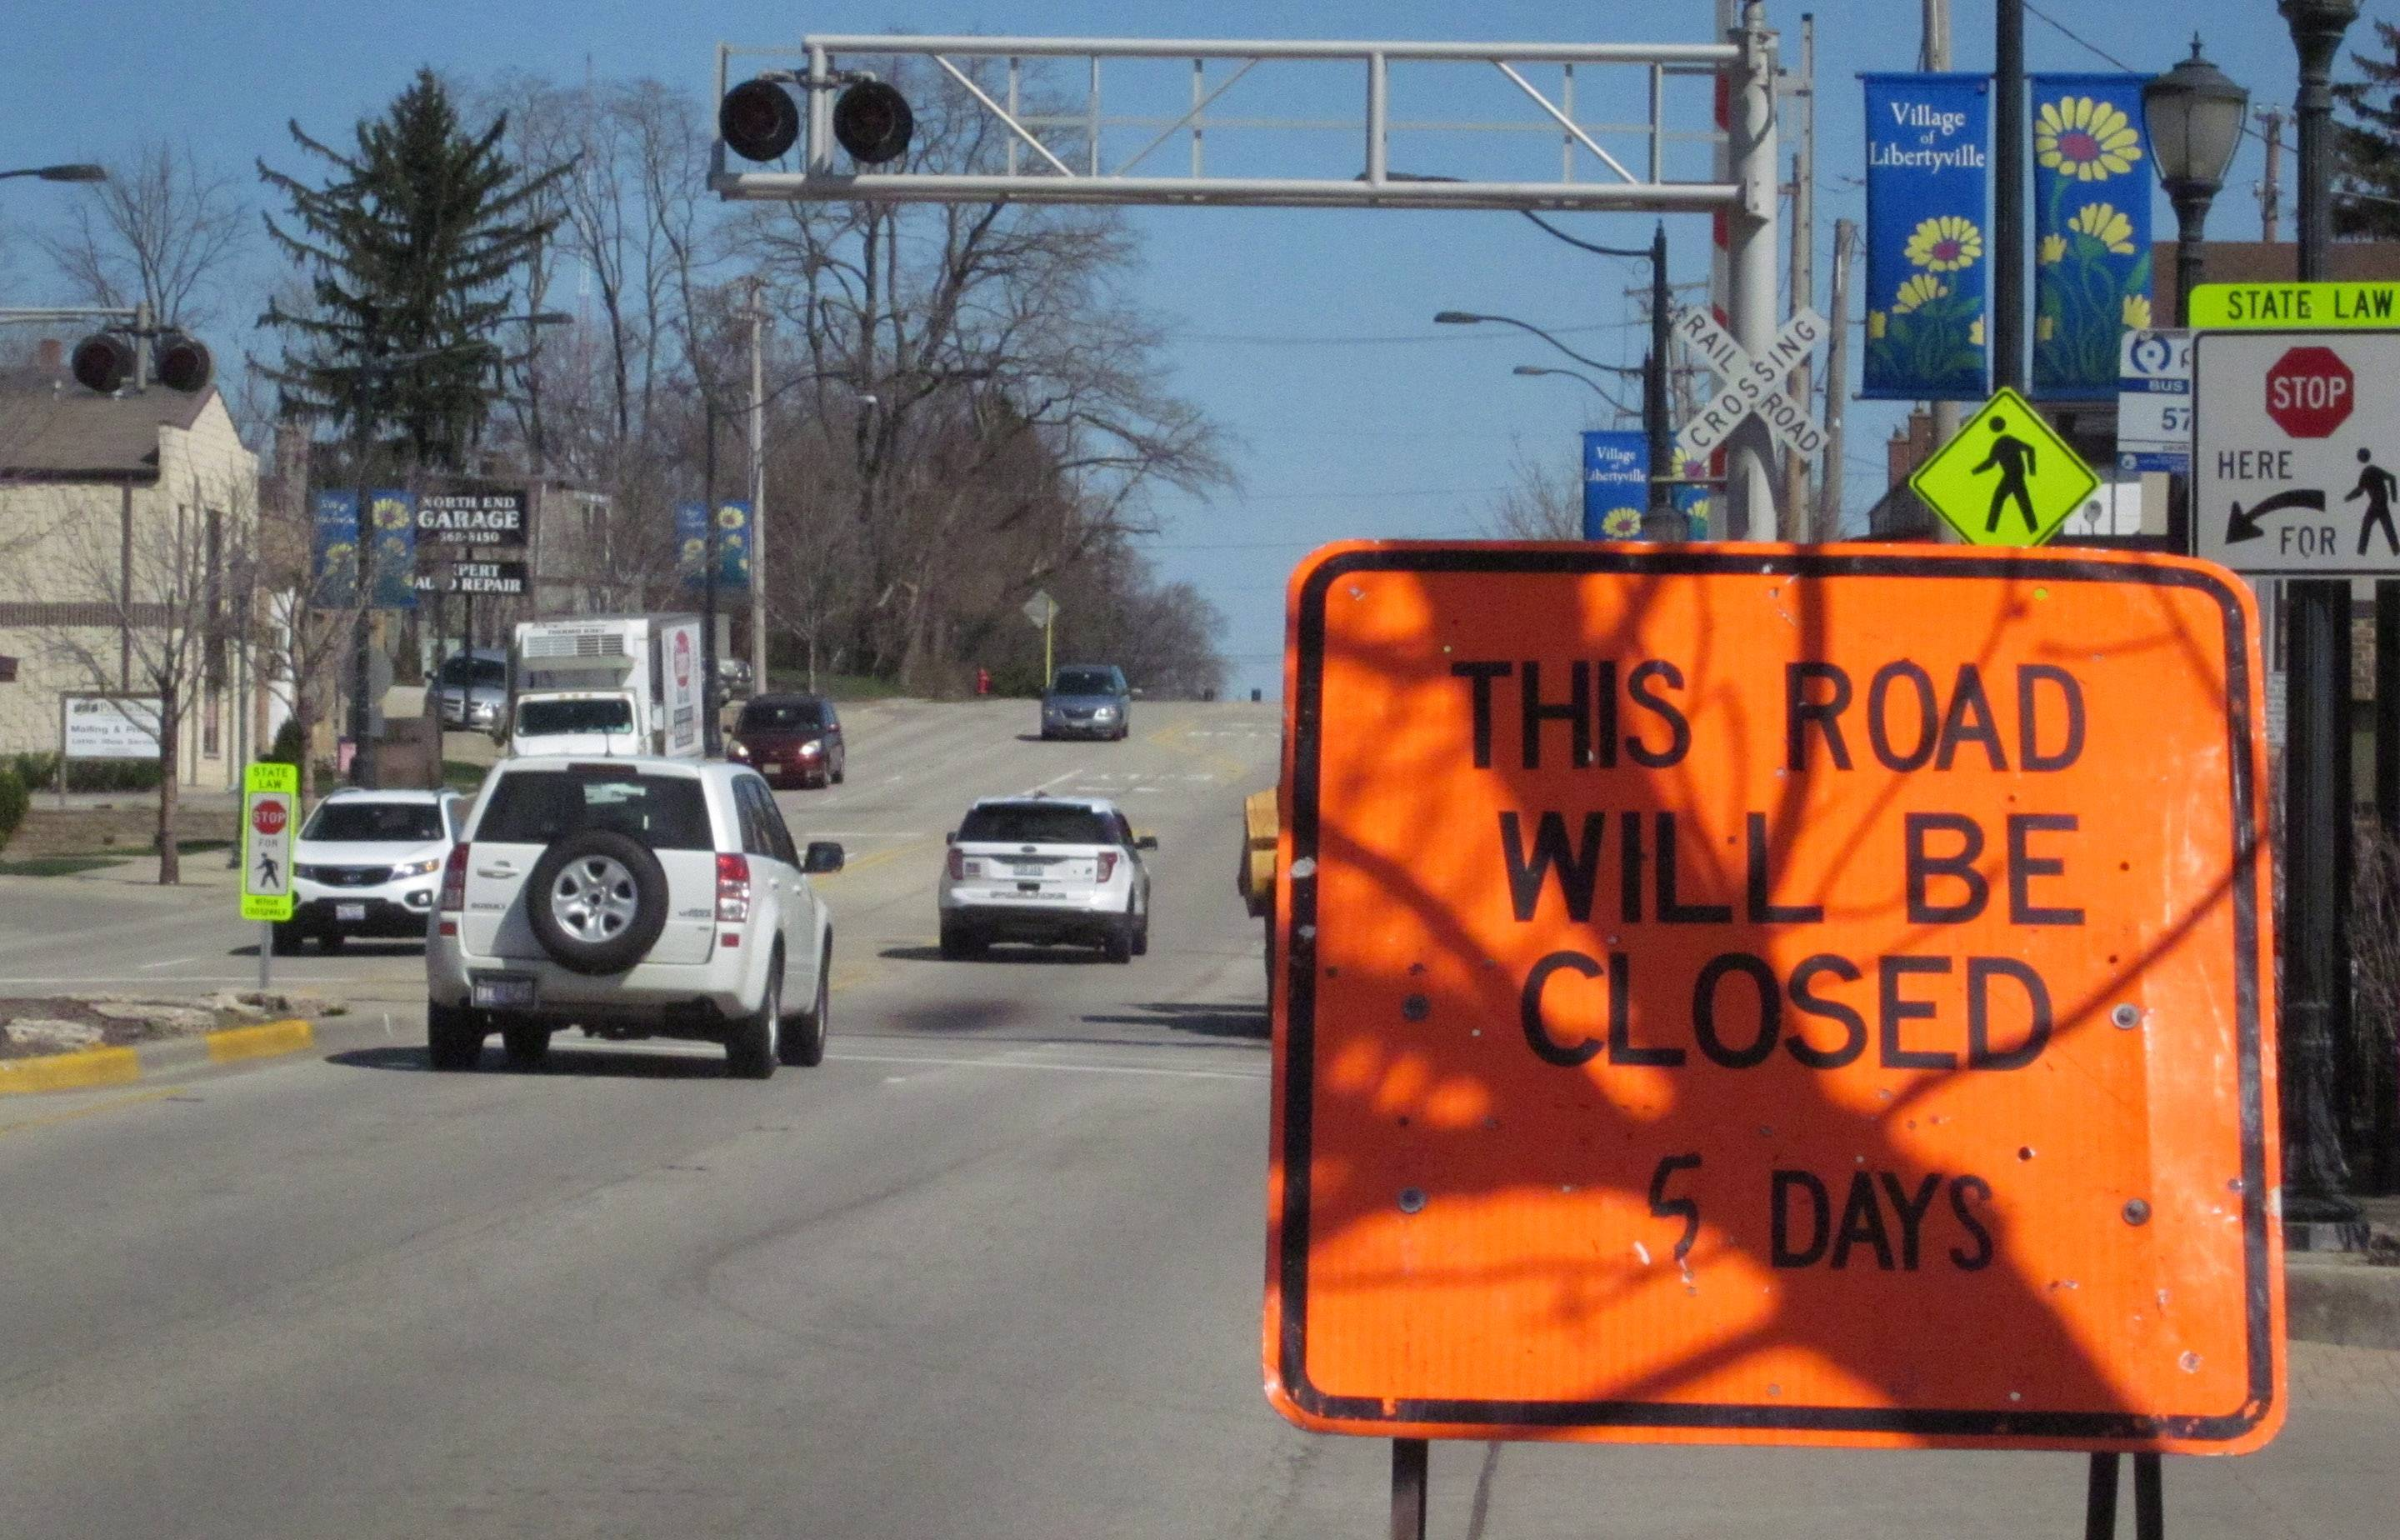 'Code Red': 5-day road closure looms in Libertyville